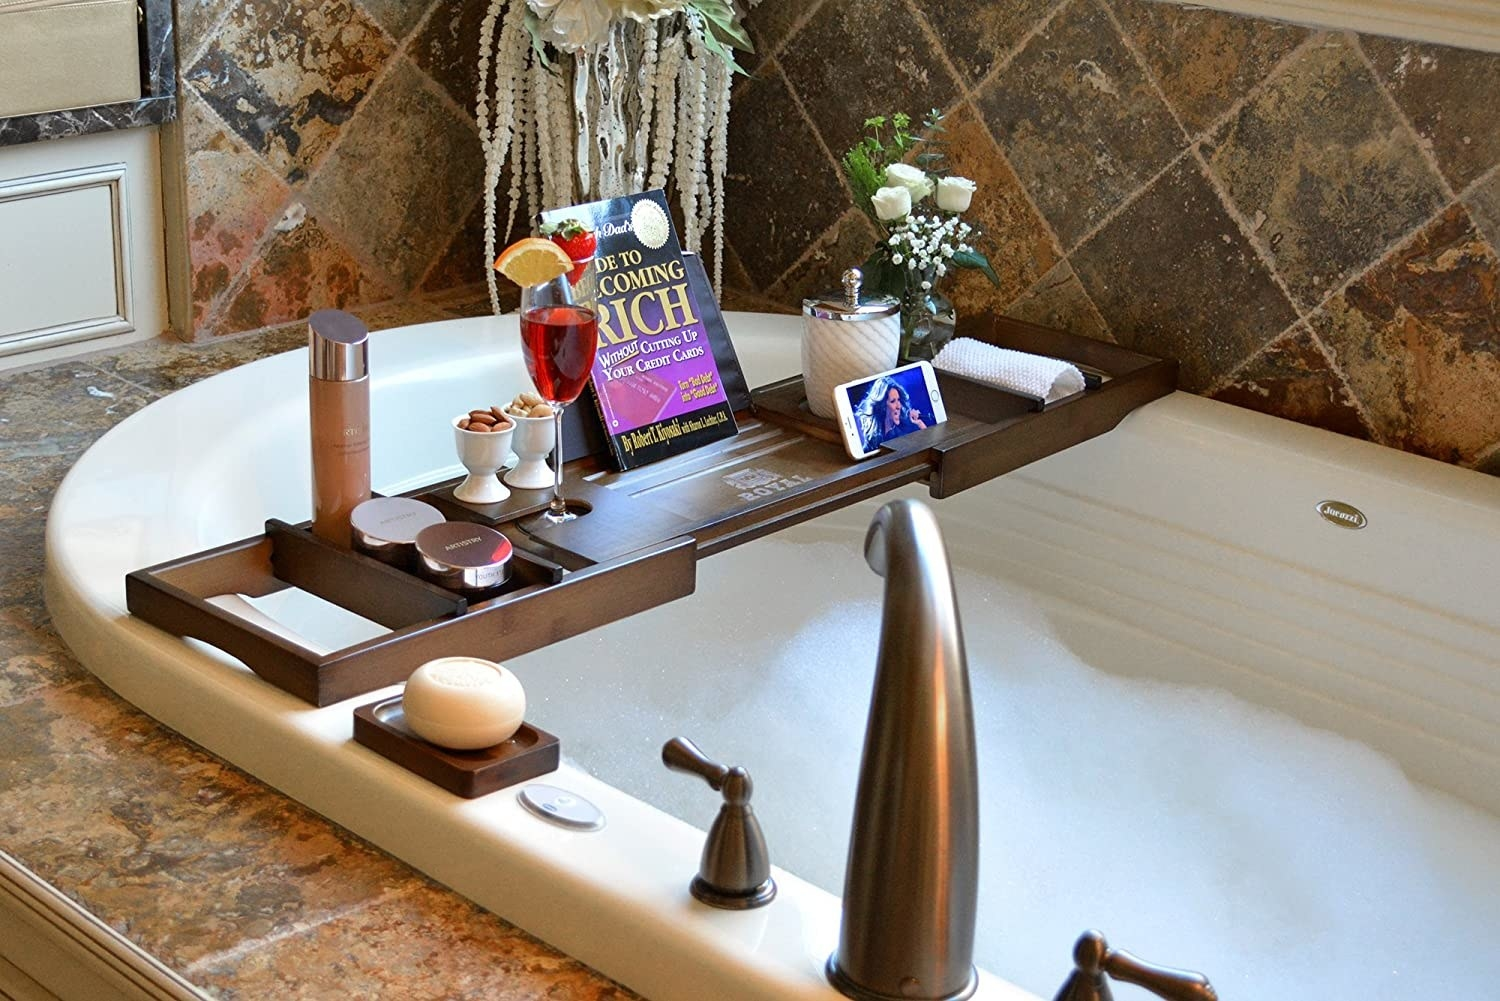 A bath caddy tray set up on a bath tub with various items like flowers, wine, mobile phone, etc. kept on it.